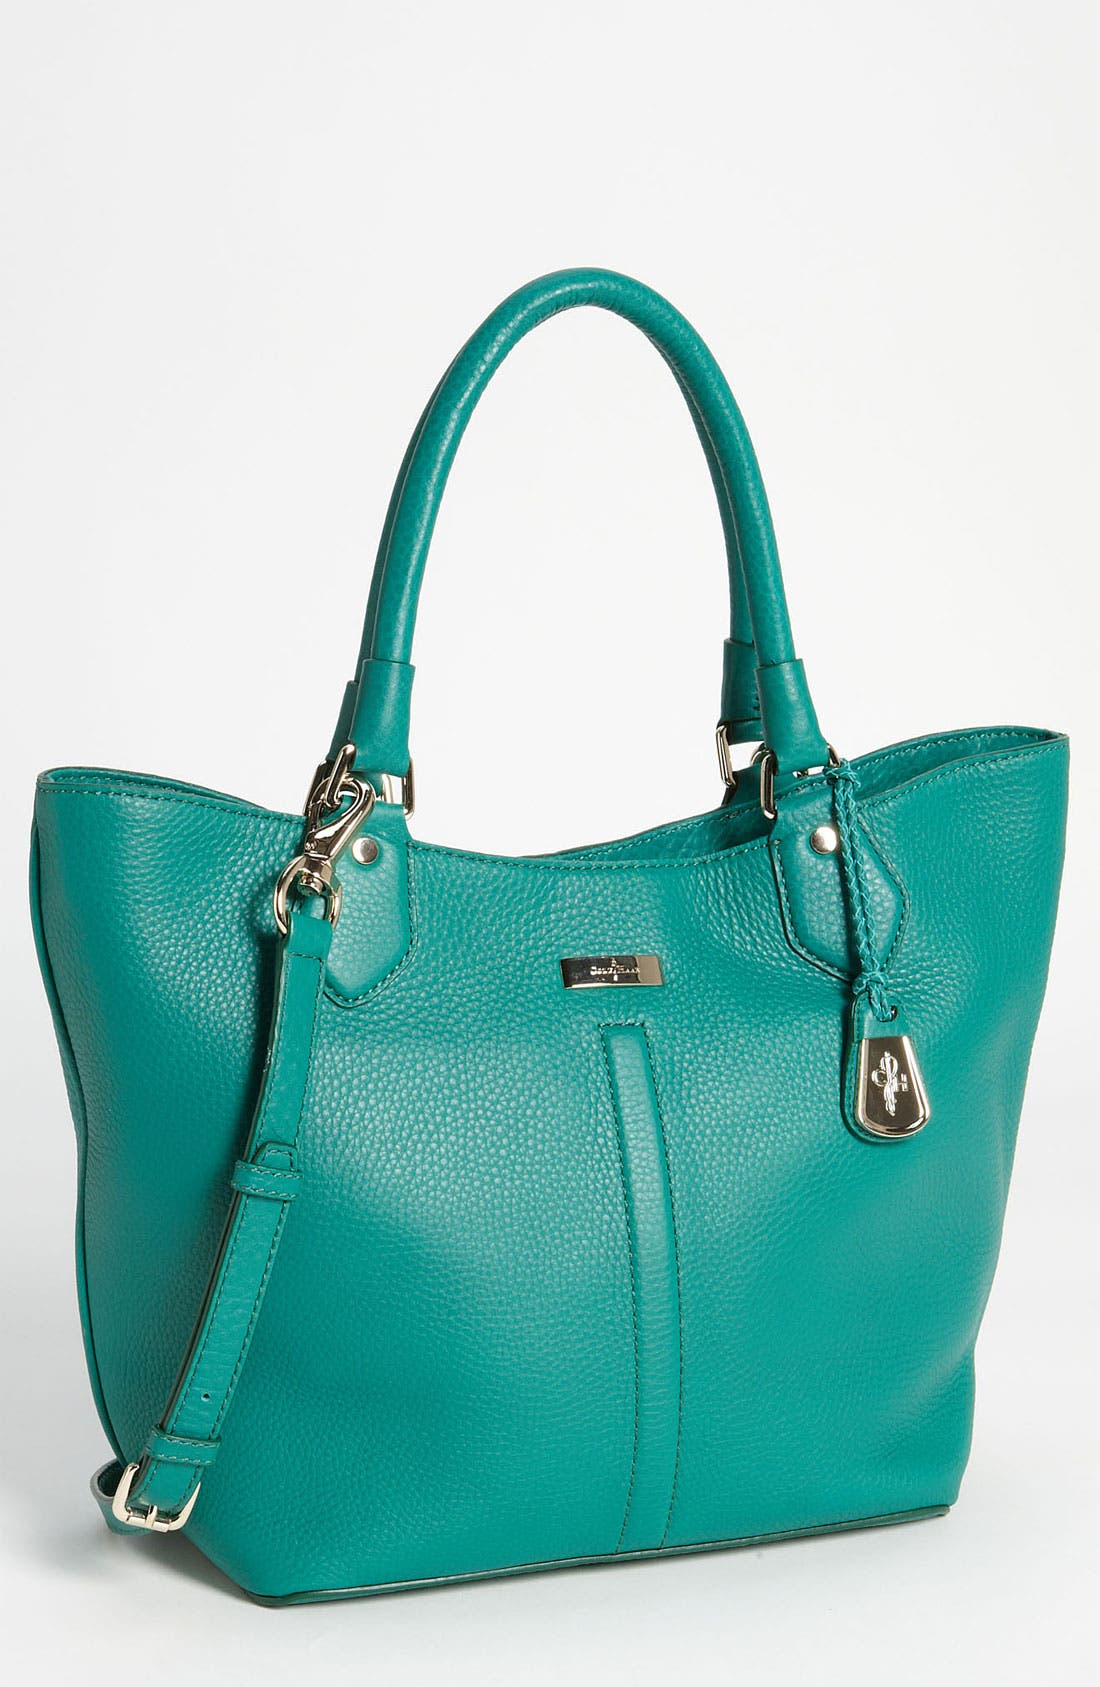 Main Image - Cole Haan 'Triangle - Small' Leather Tote